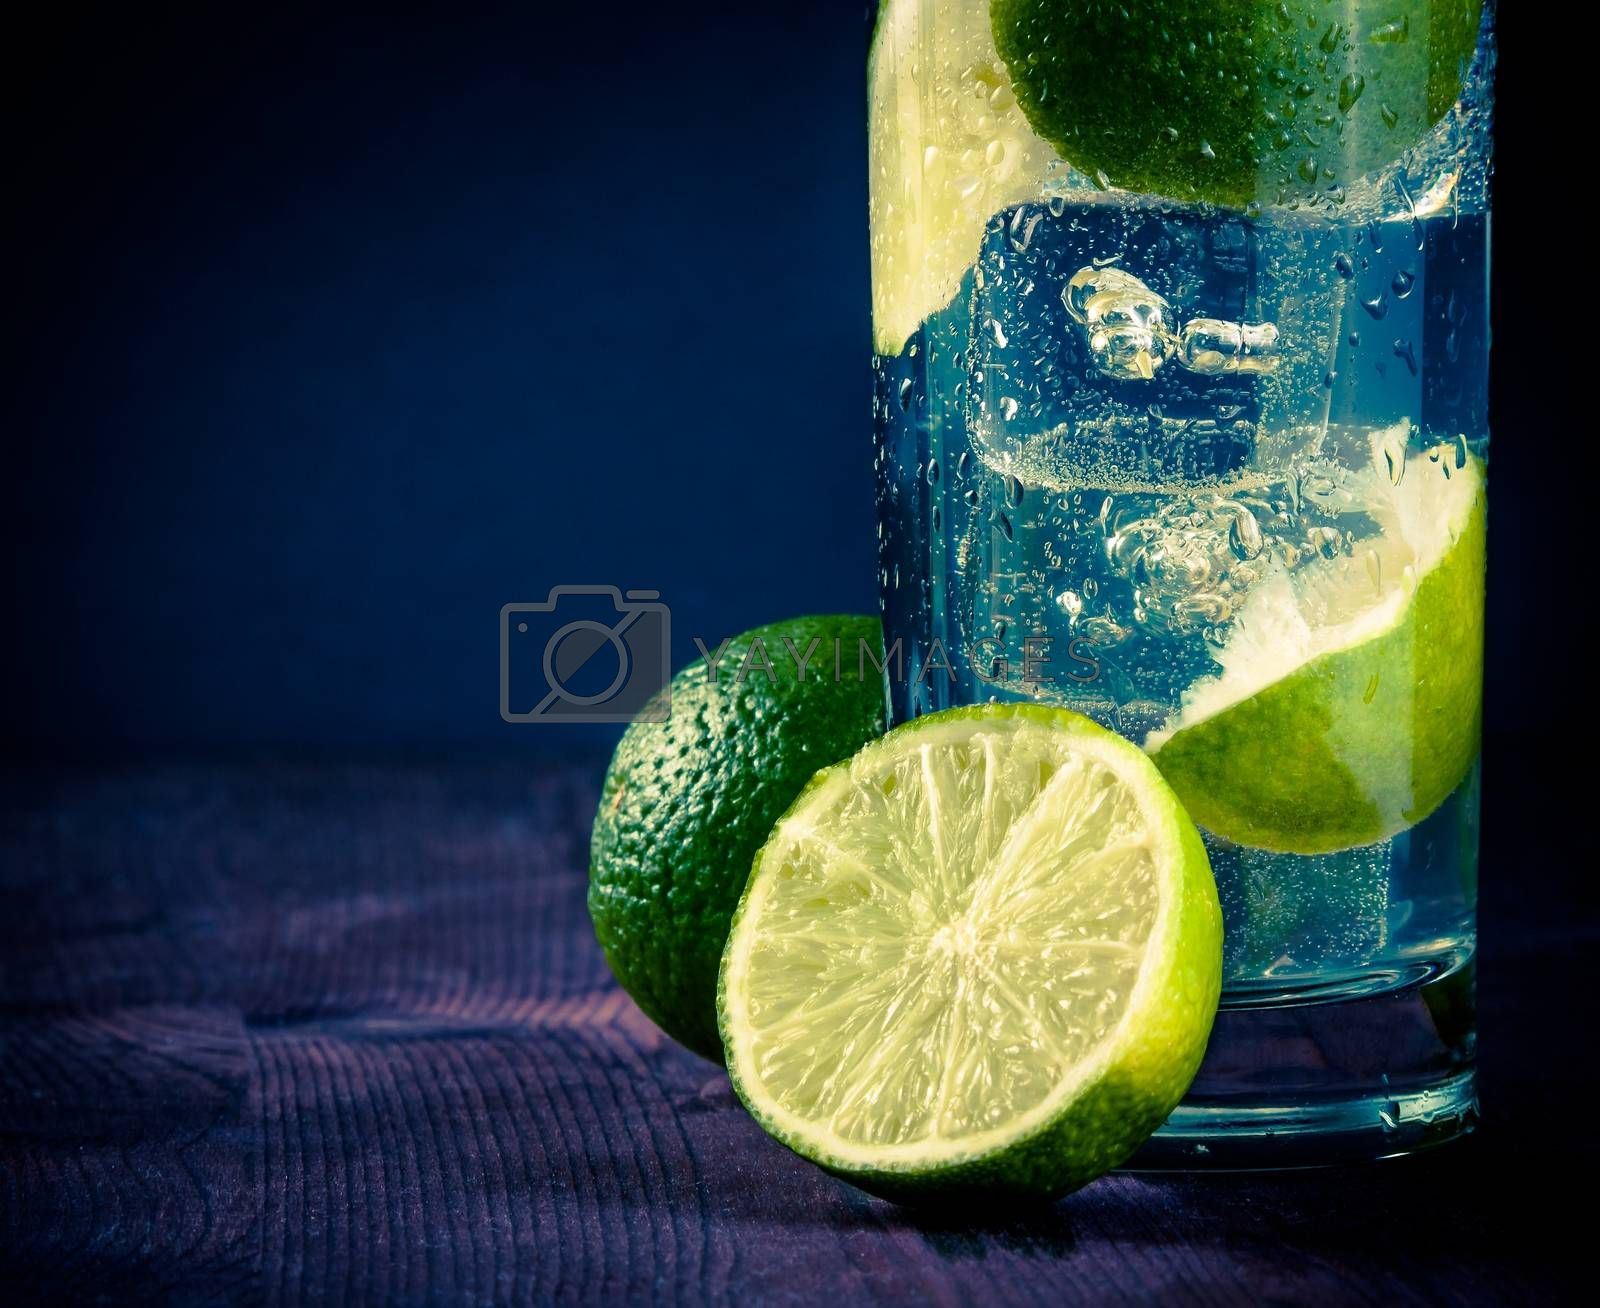 Cocktail with ice and lime slice and space for text, club atmosphere by donfiore